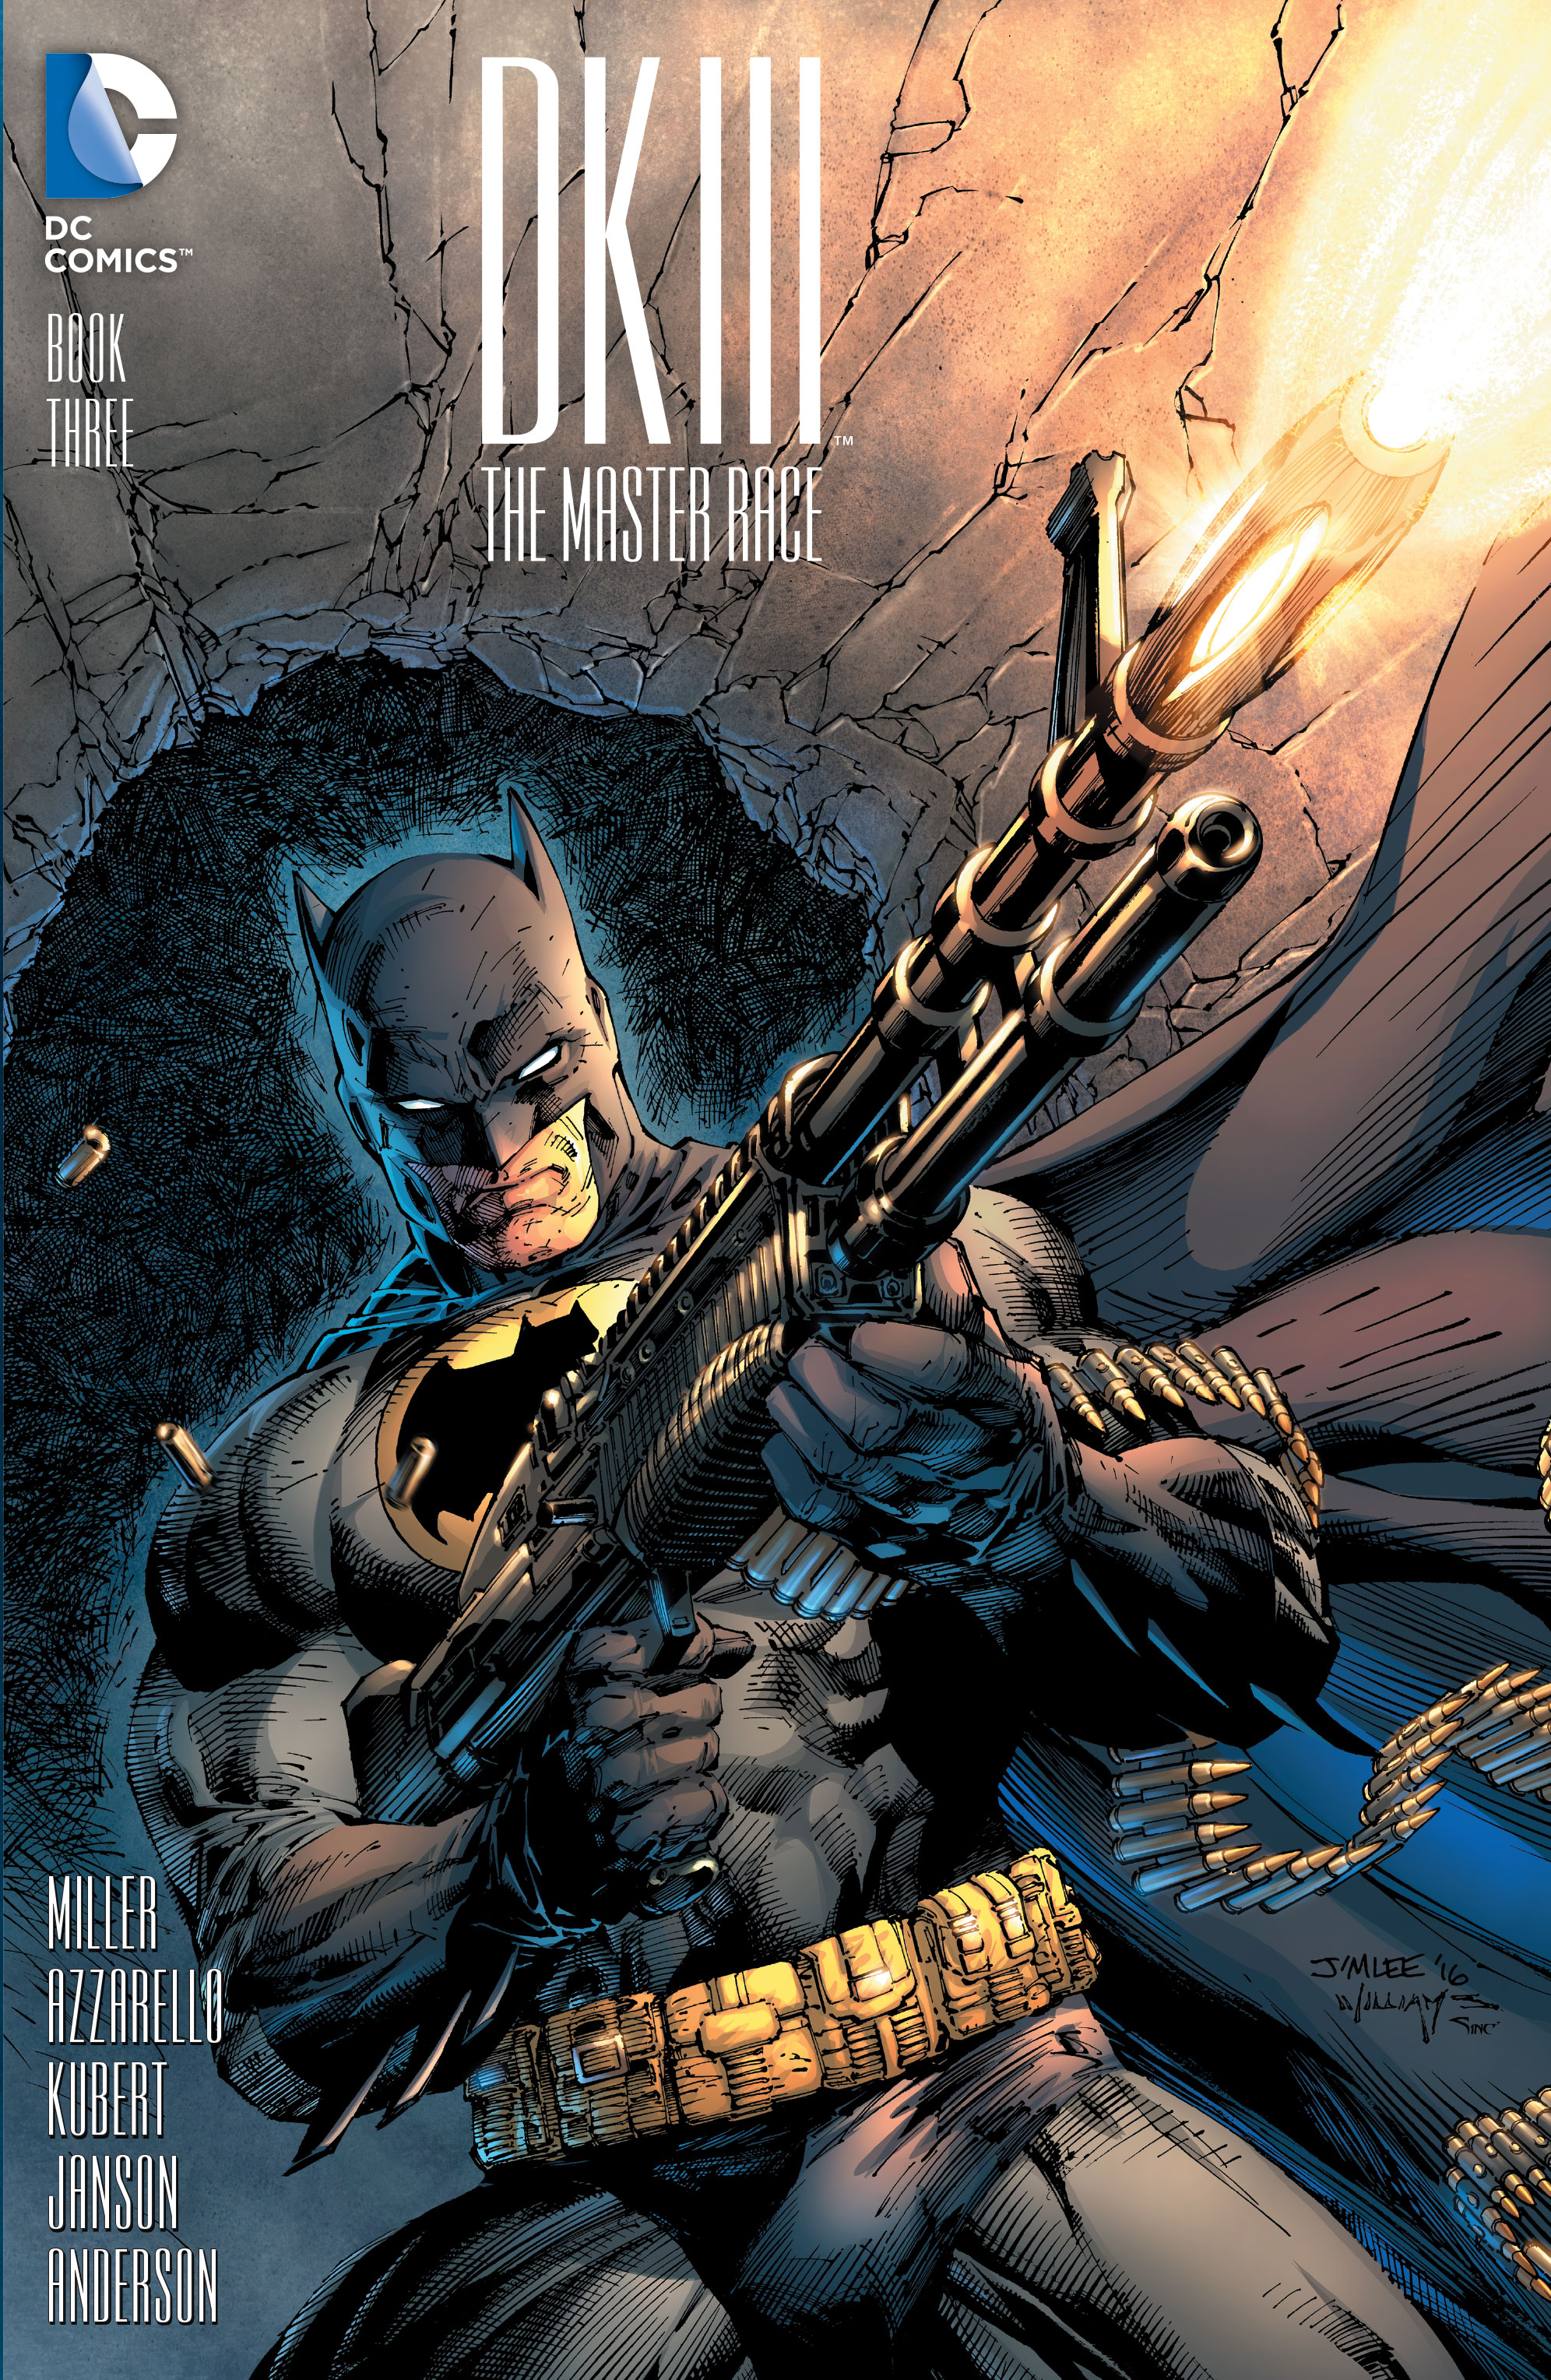 1 in 500 variant cover by Jim Lee